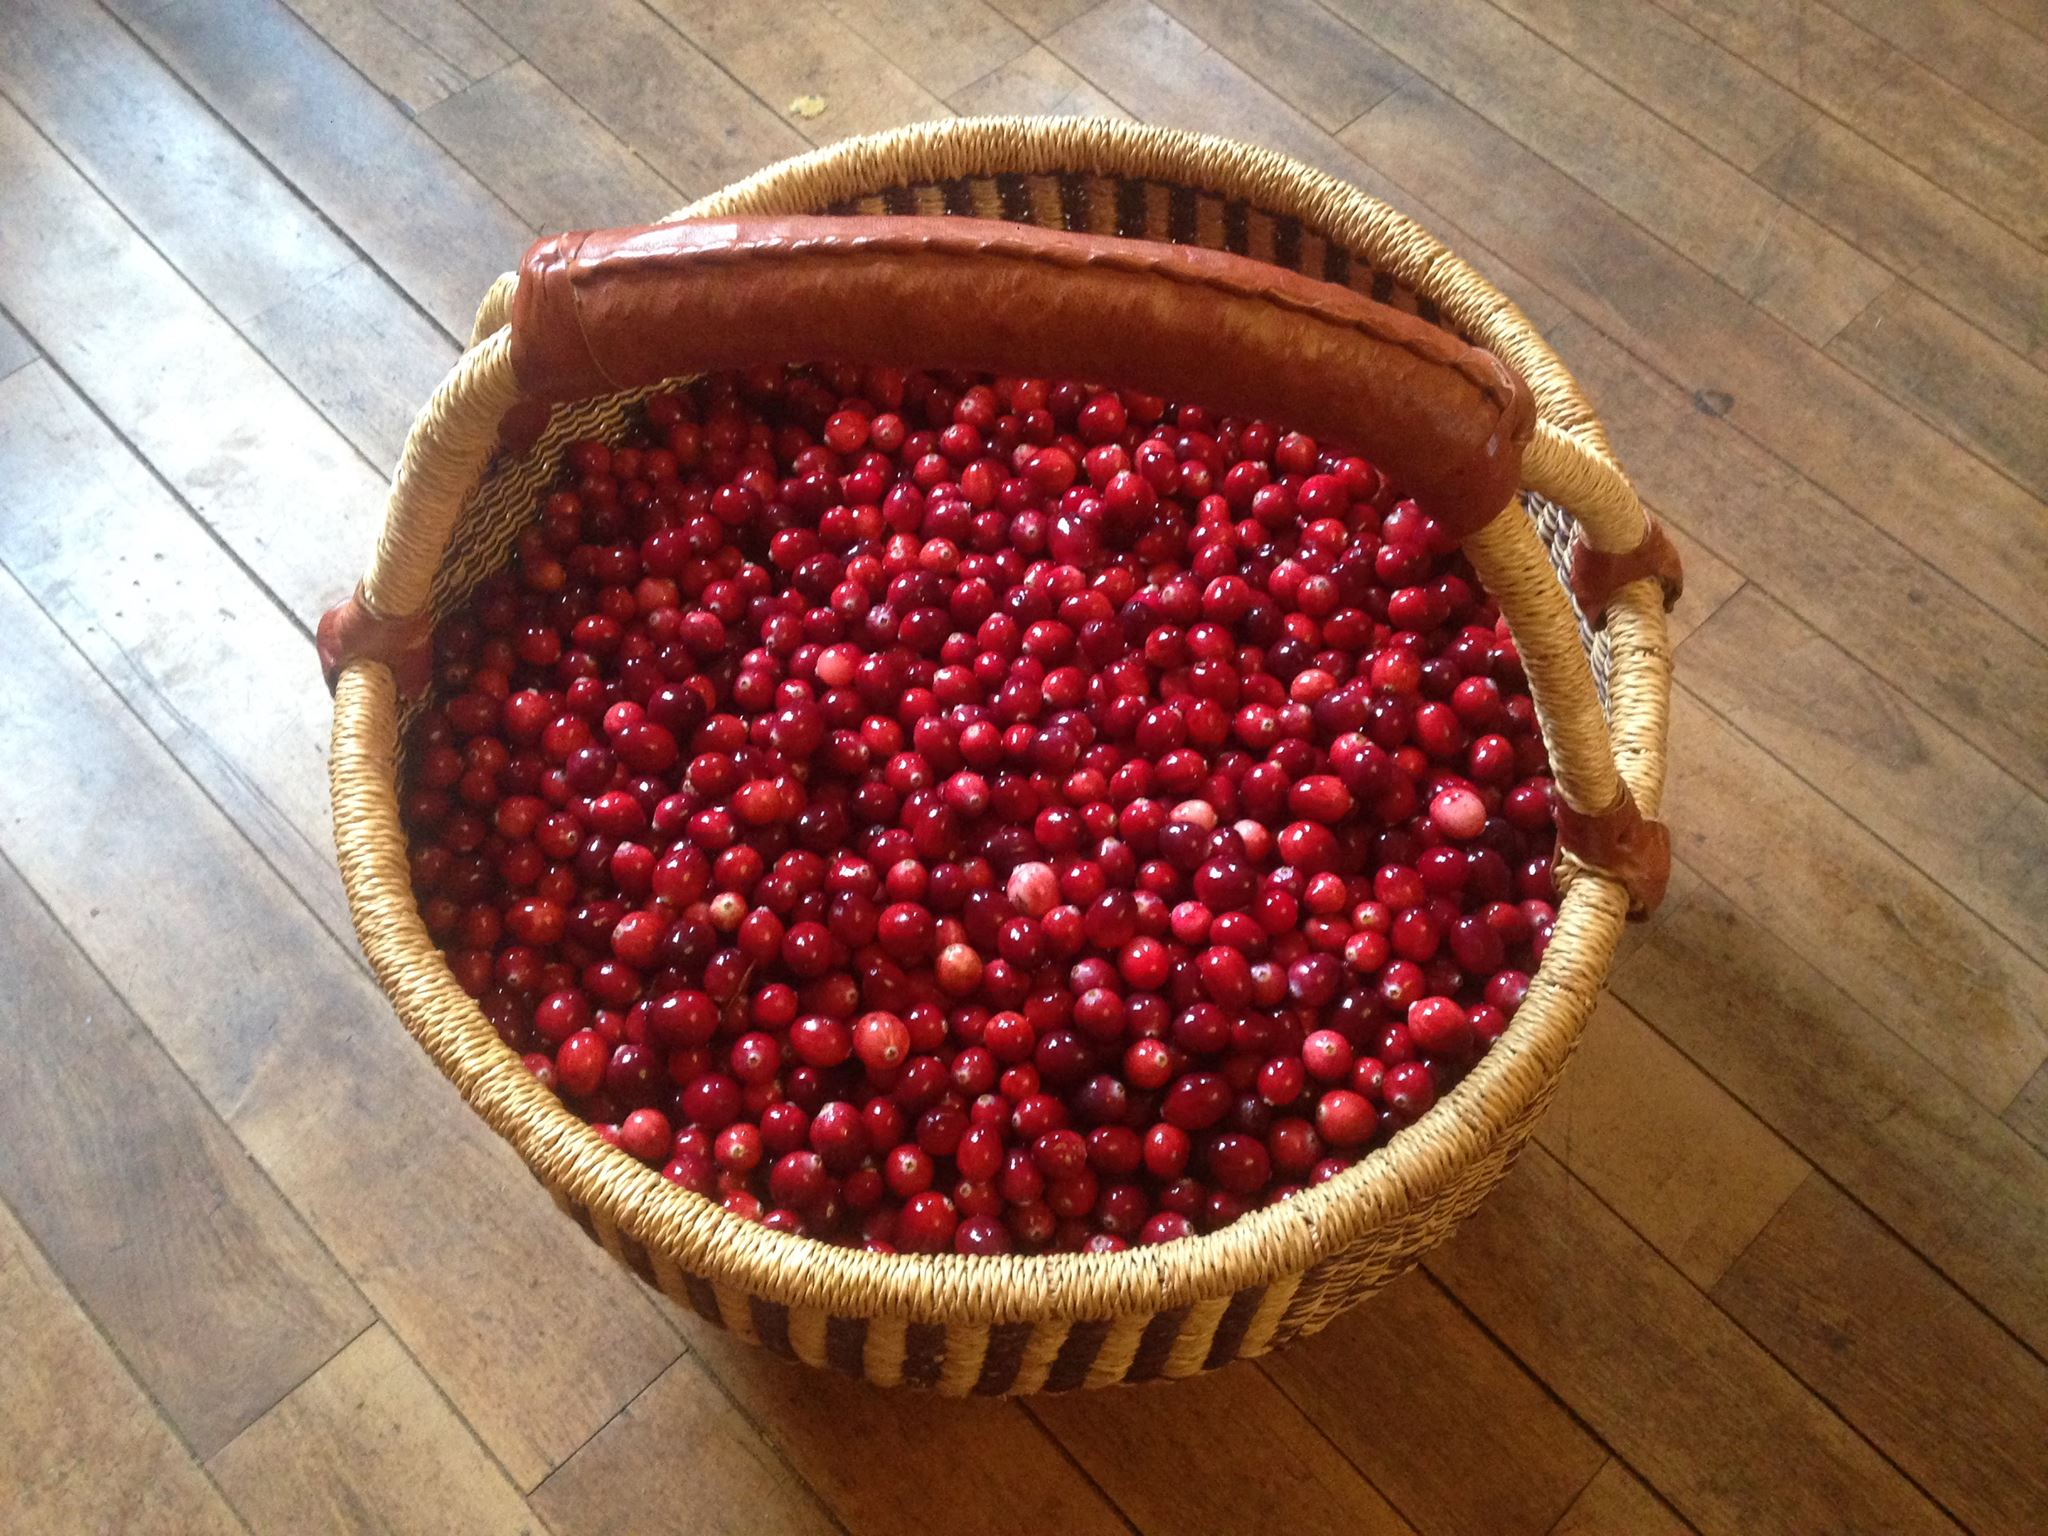 meka_farm_cranberry_basket.jpg